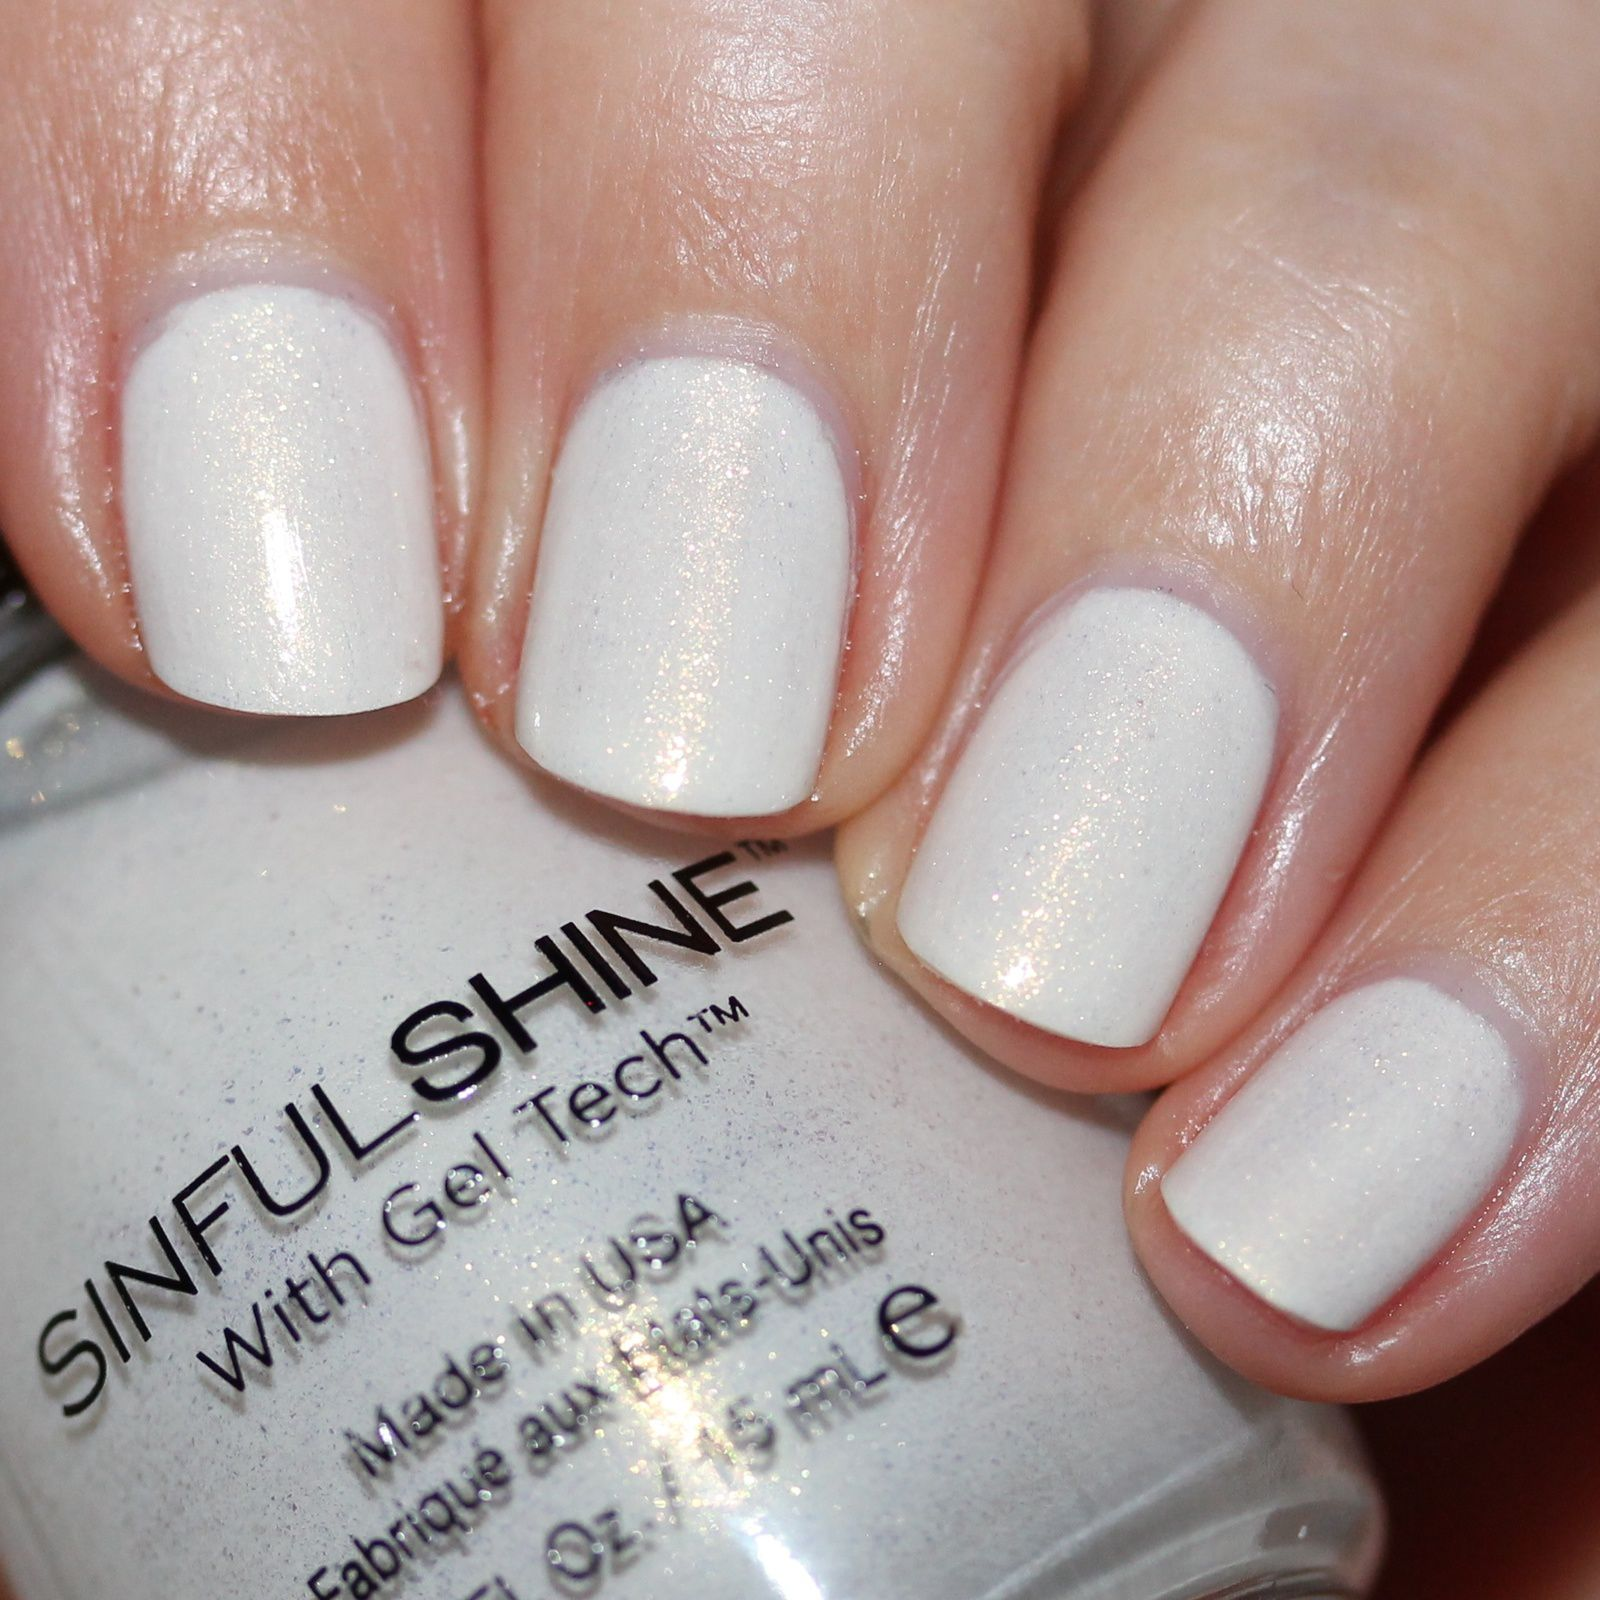 Sally Hansen Complete Care 4-in-1 Extra Moisturizing Nail Treatment / Sinful Colors Koko-Nuts / Native War Paints Hurry, Hurry!Top Coat